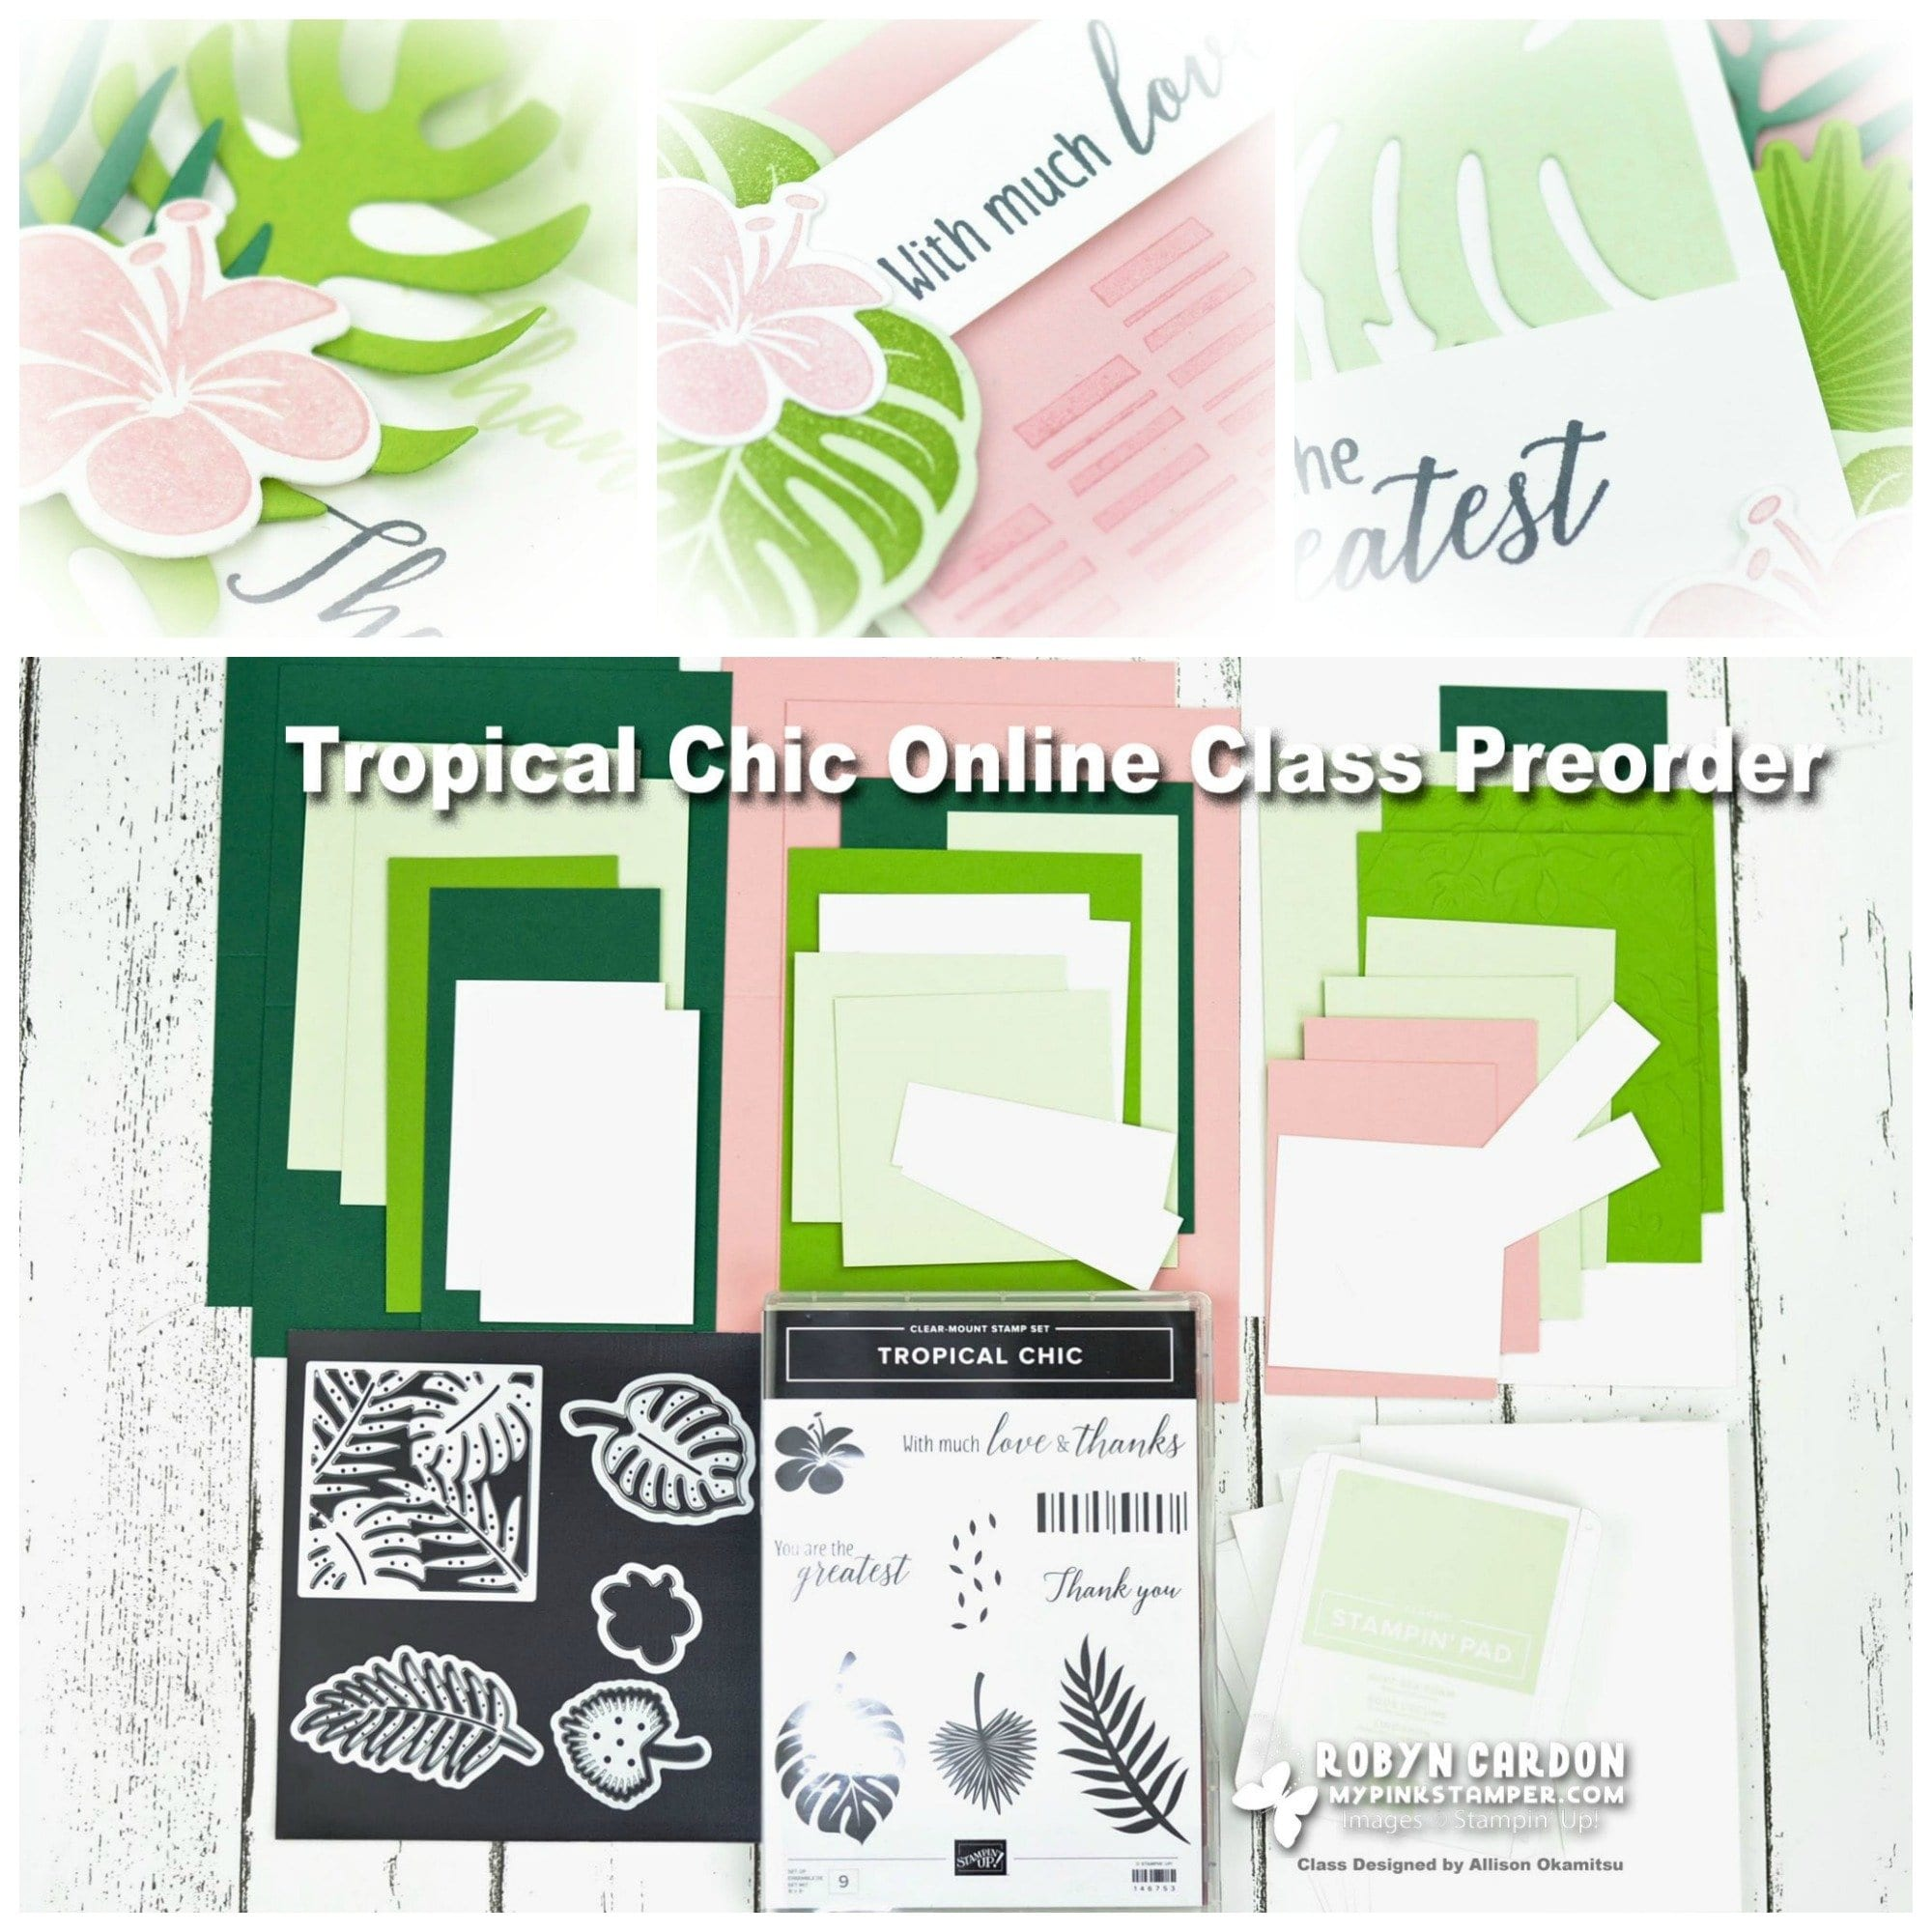 {NEW CLASS}Tropical Chic Online Class Preorder